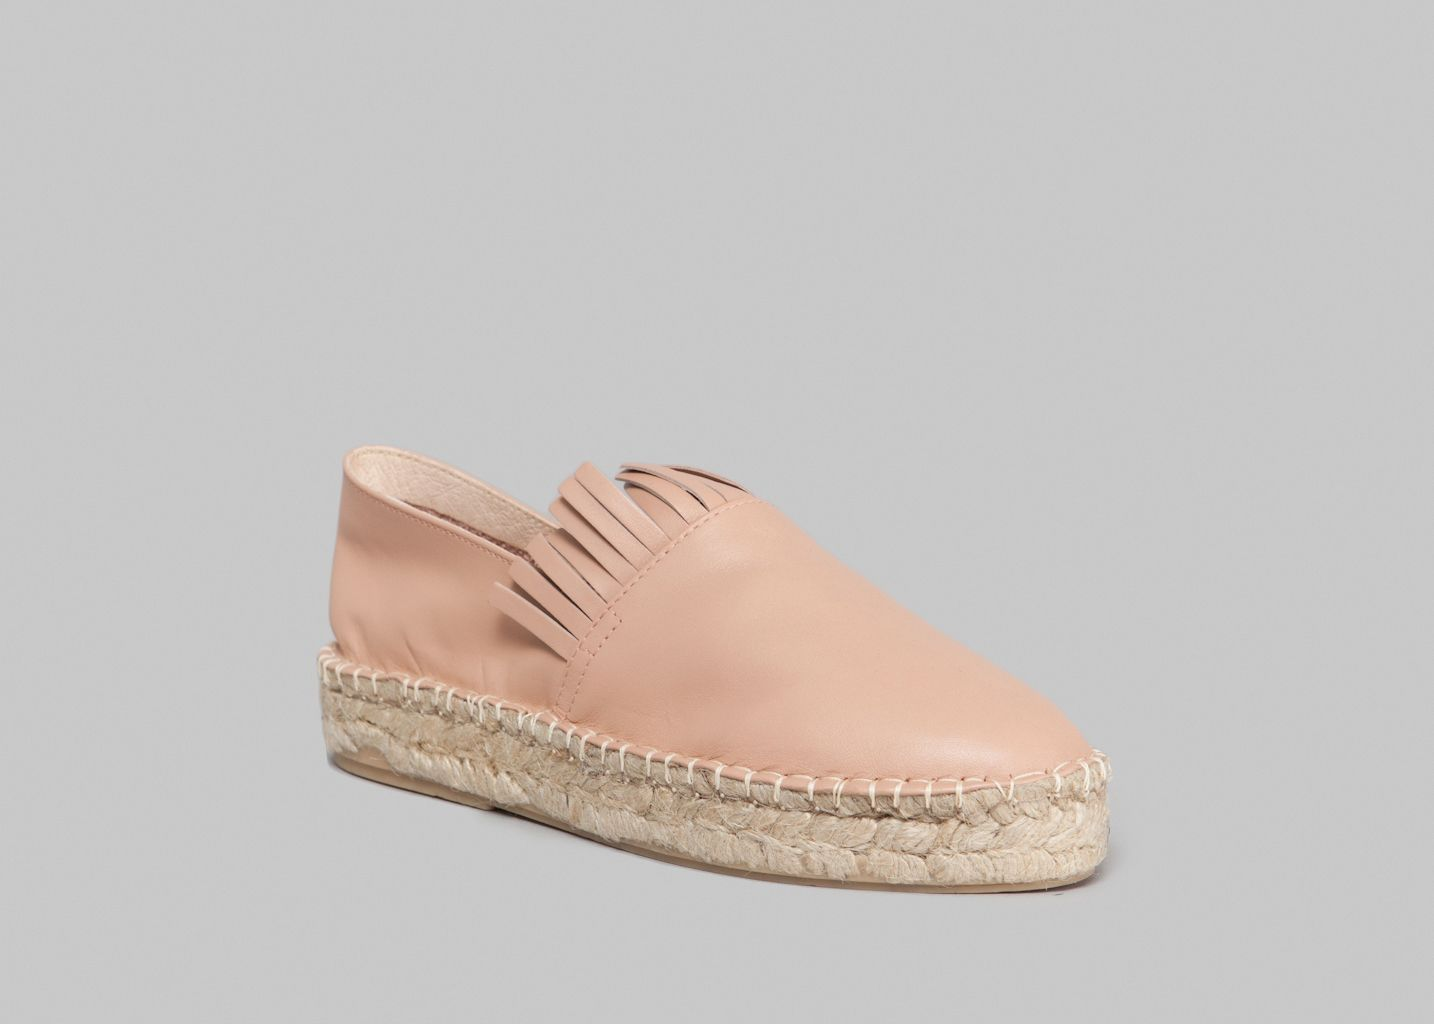 659238ee35a15 Espadrilles Franges Rose Craie   L Exception